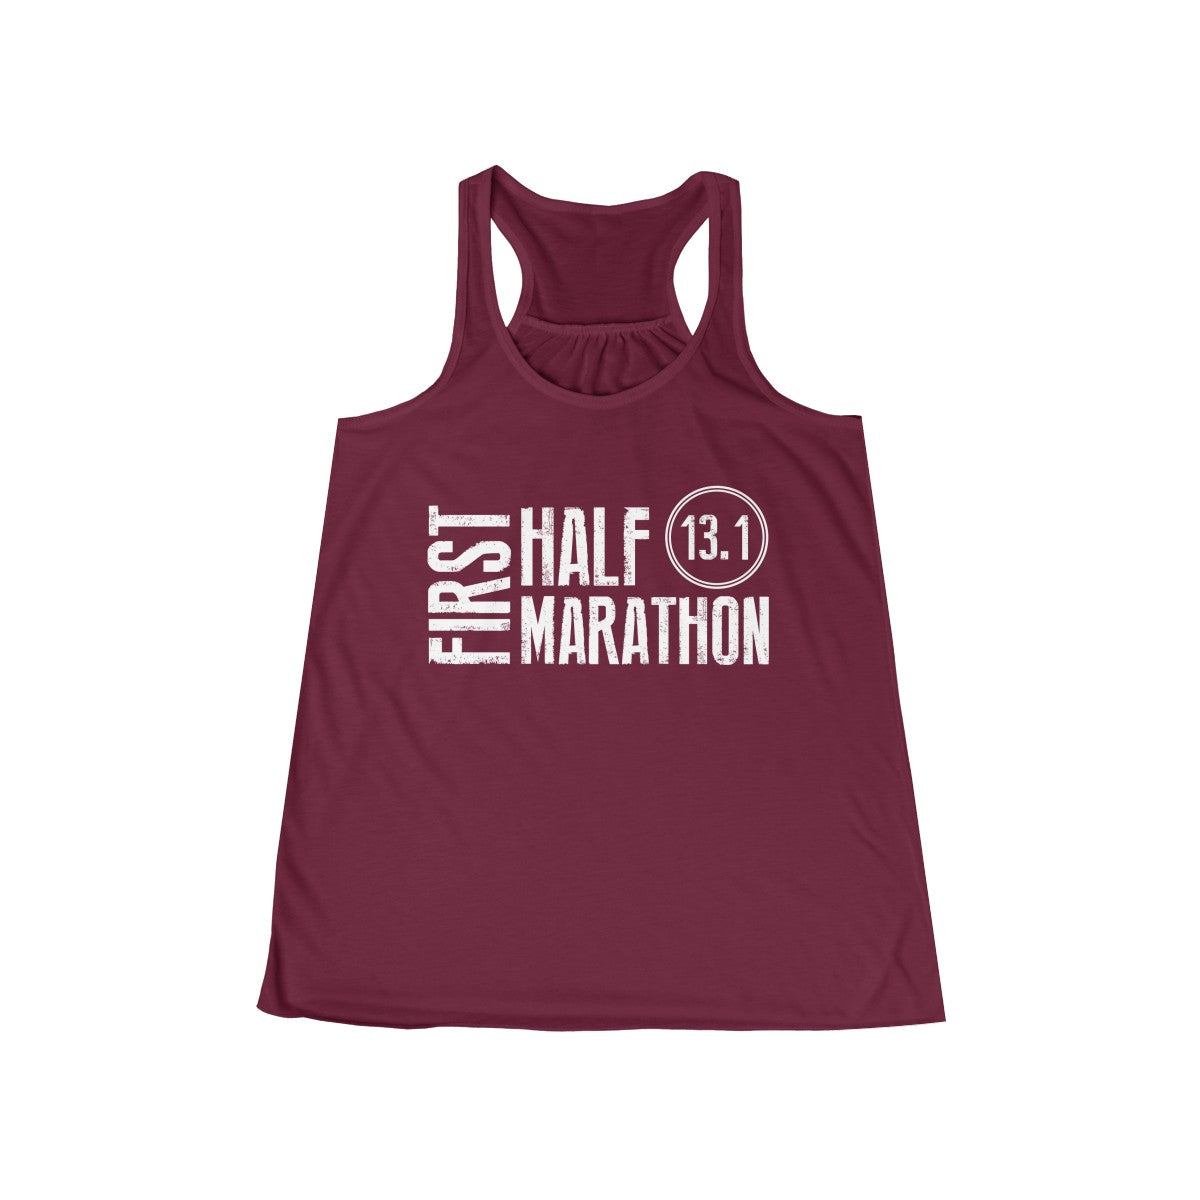 First Half Marathon 13.1 Workout Flowy Racerback Tank